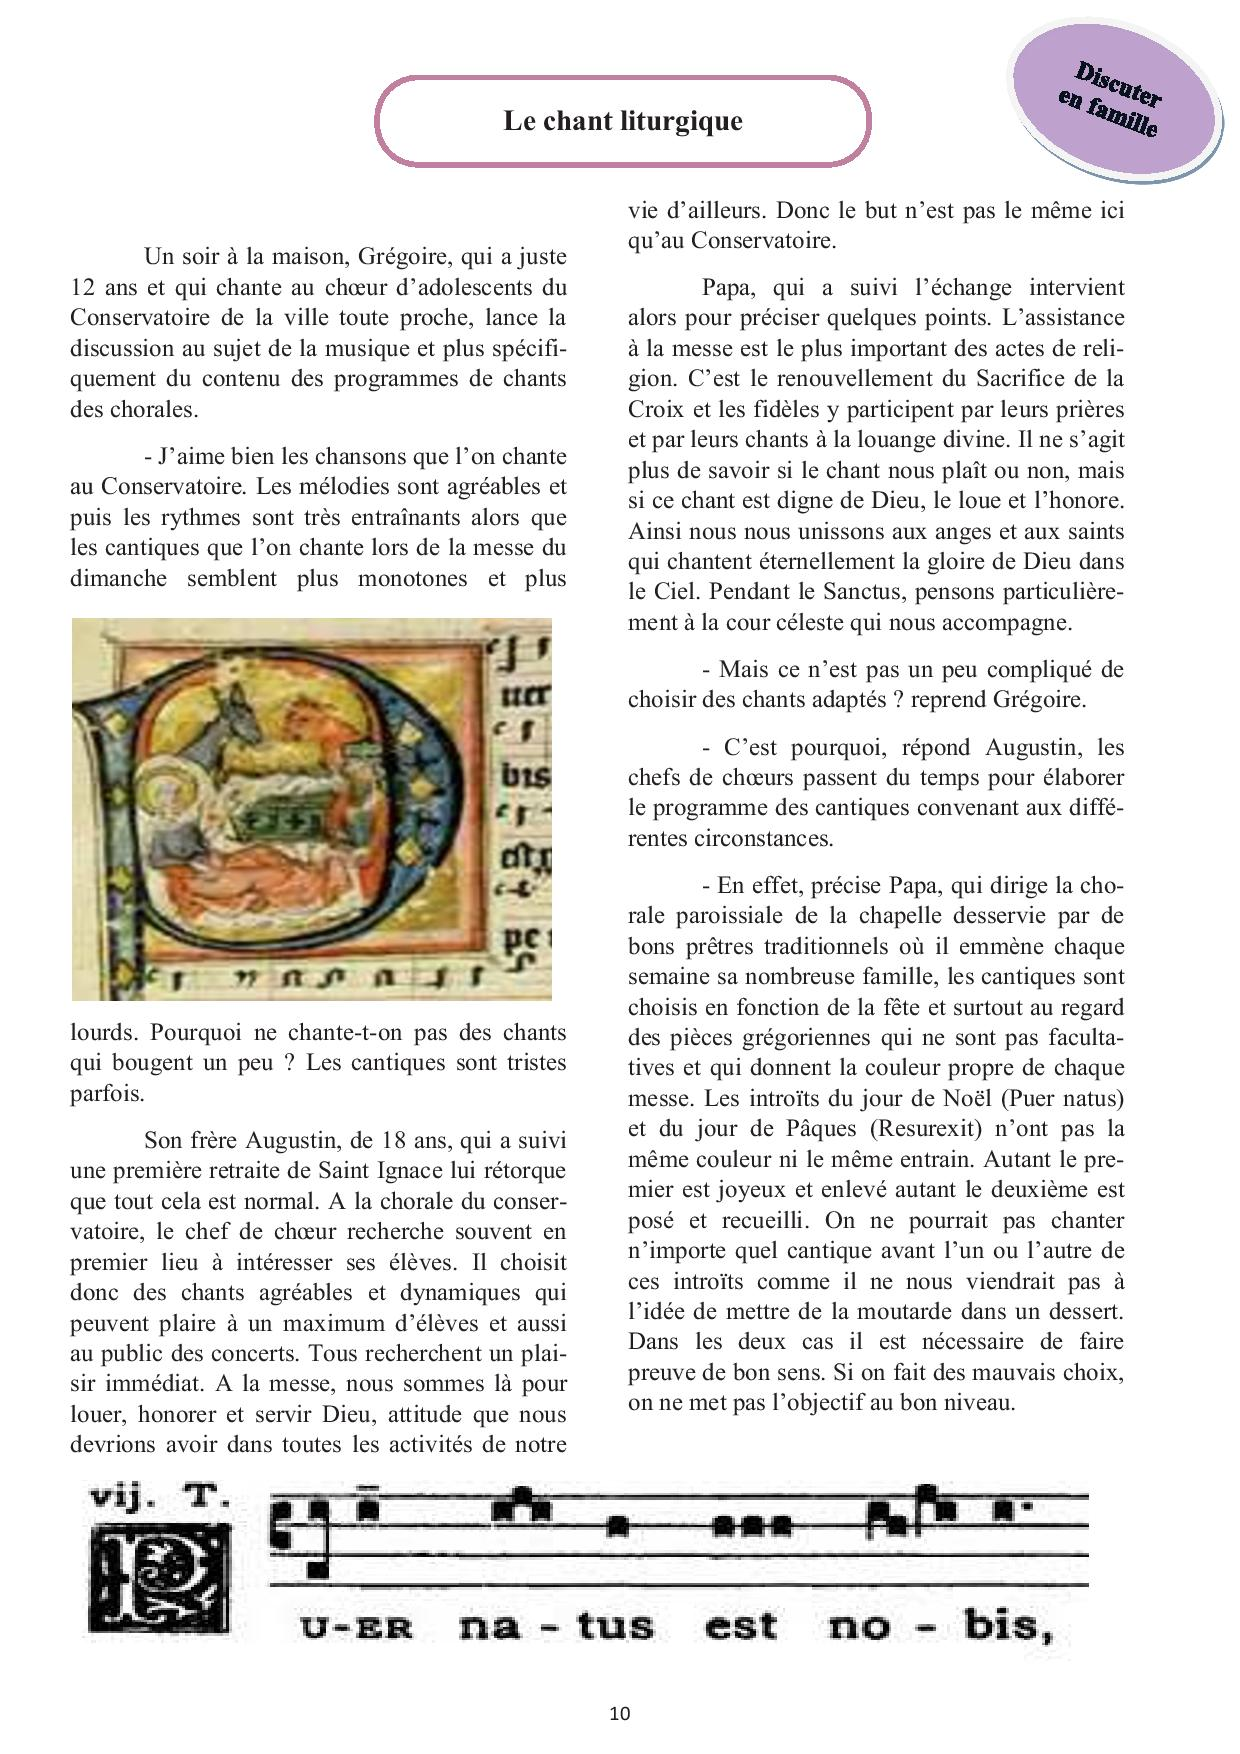 Le chant liturgique